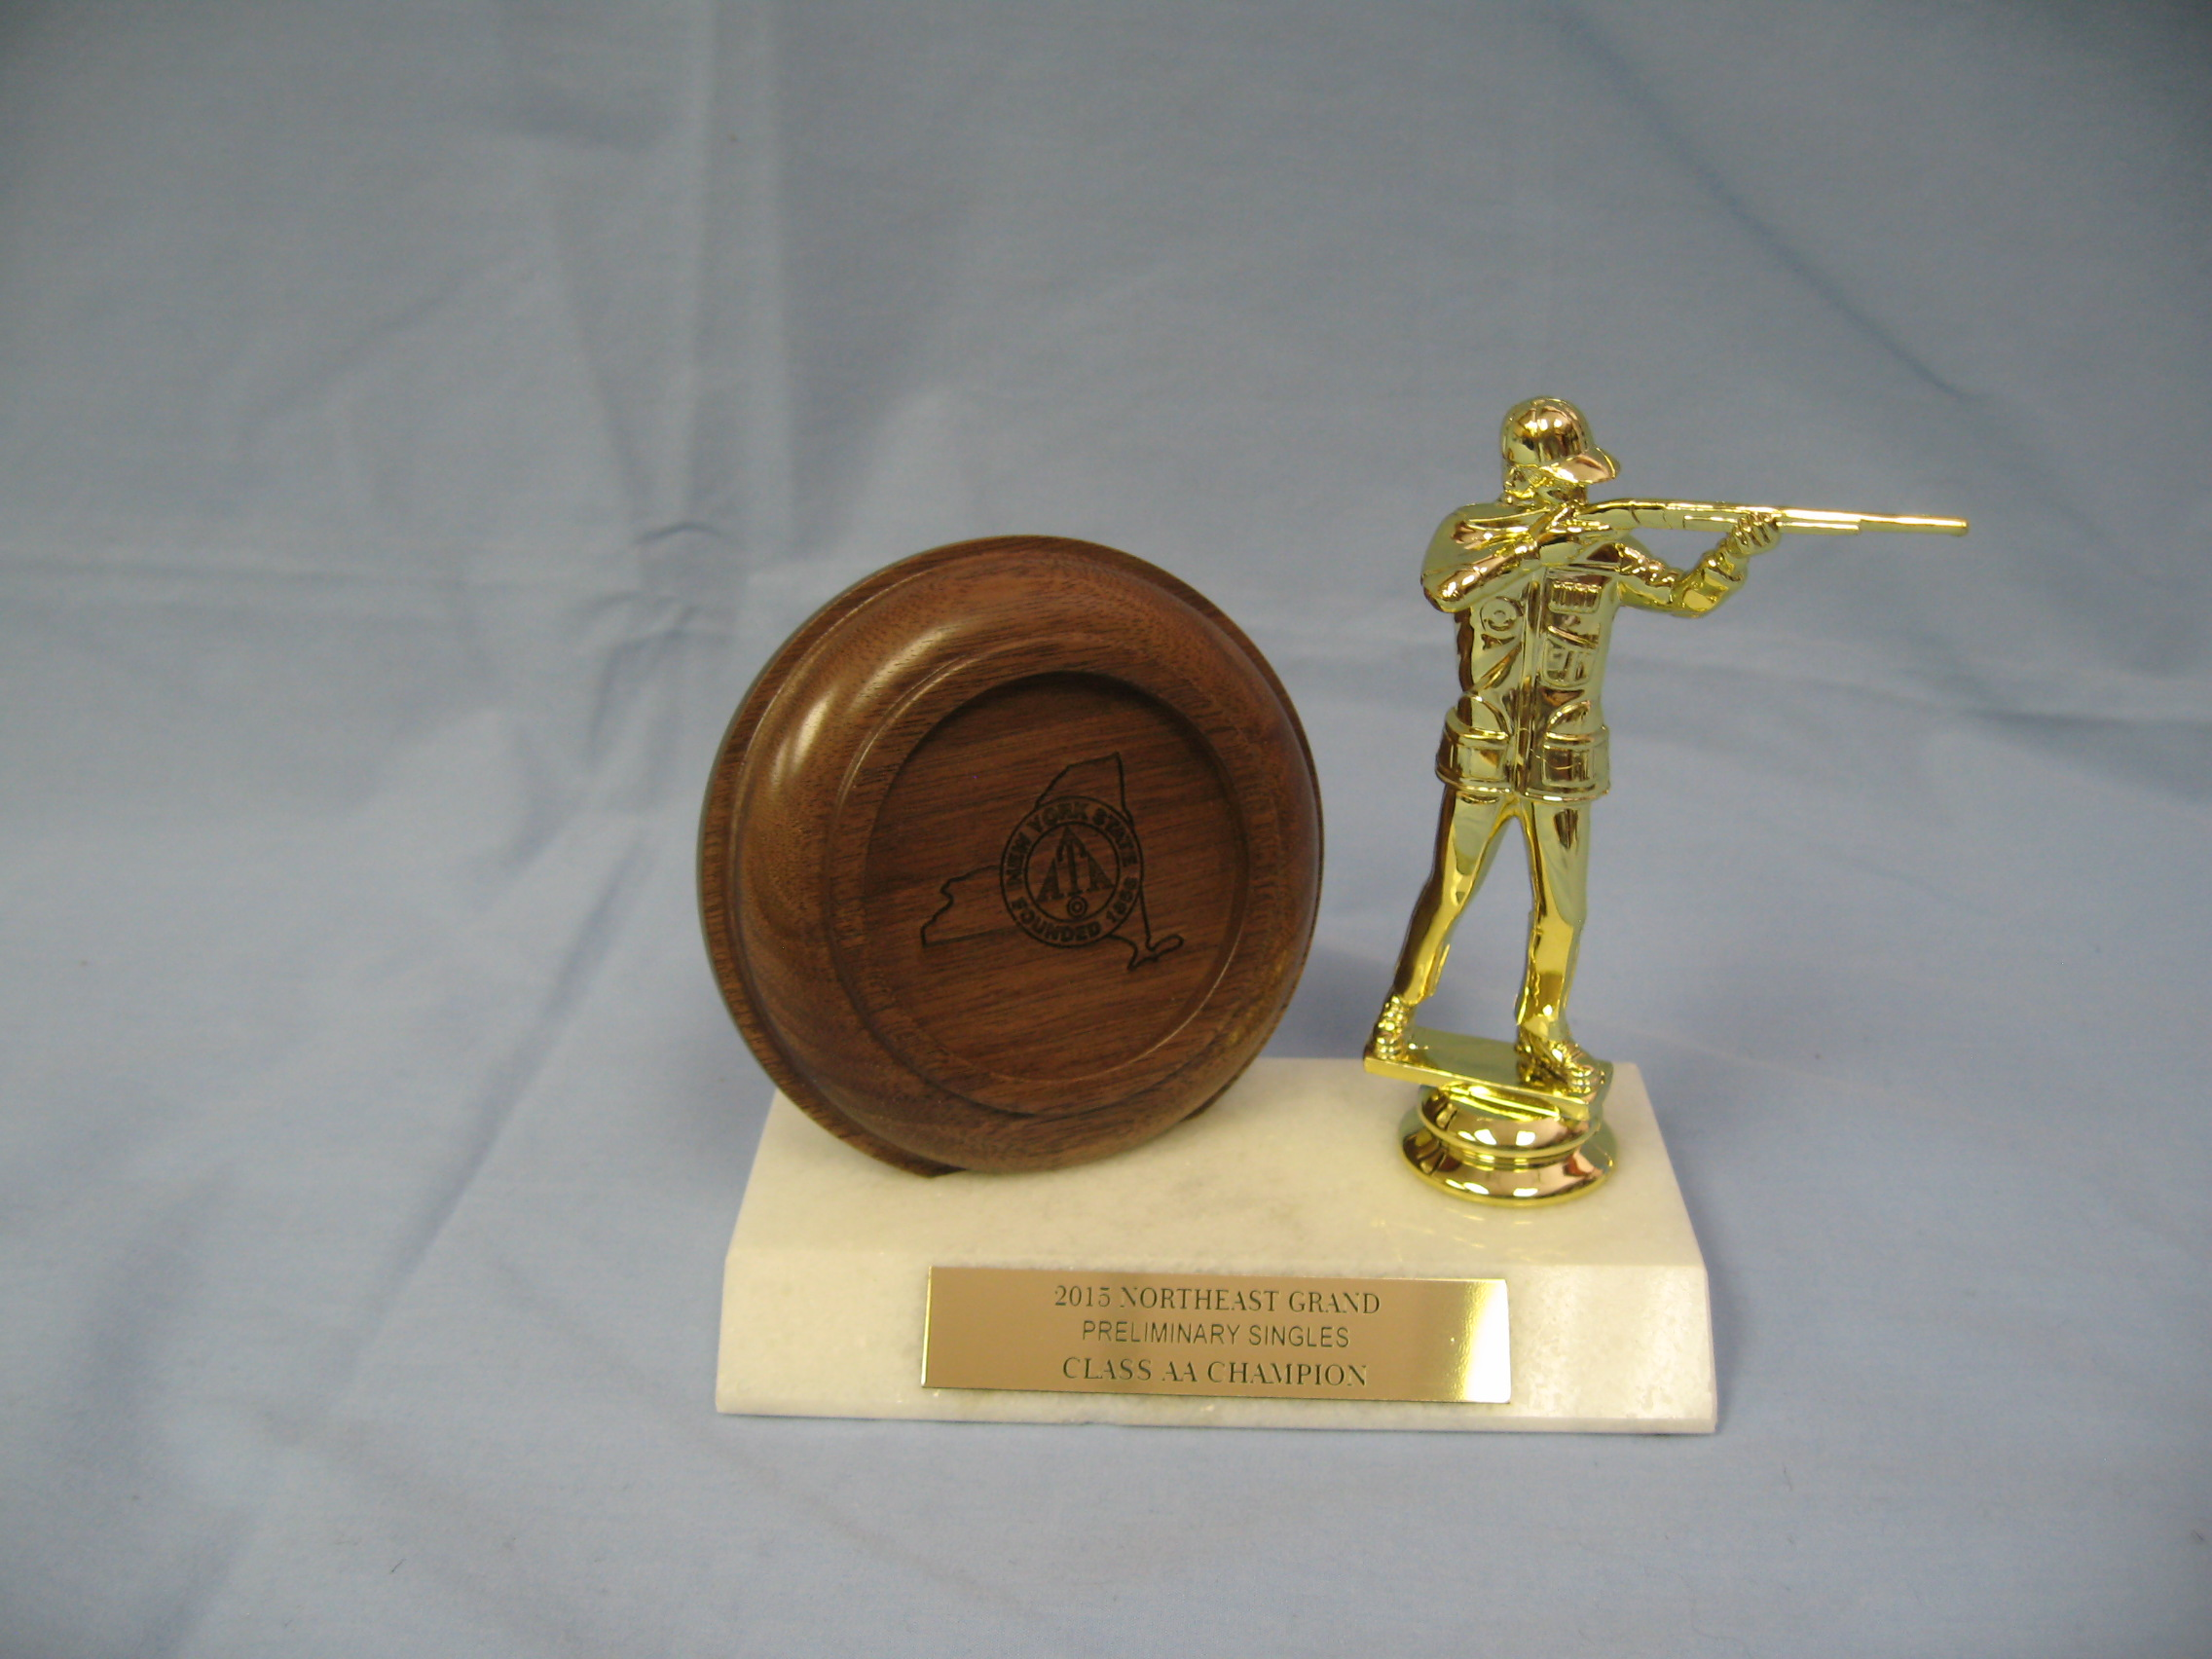 Crown Awards Trap Shooter Trophies with Custom Engraving 7.25 Personalized Male Trap Shooting Trophy On Deluxe Round Base